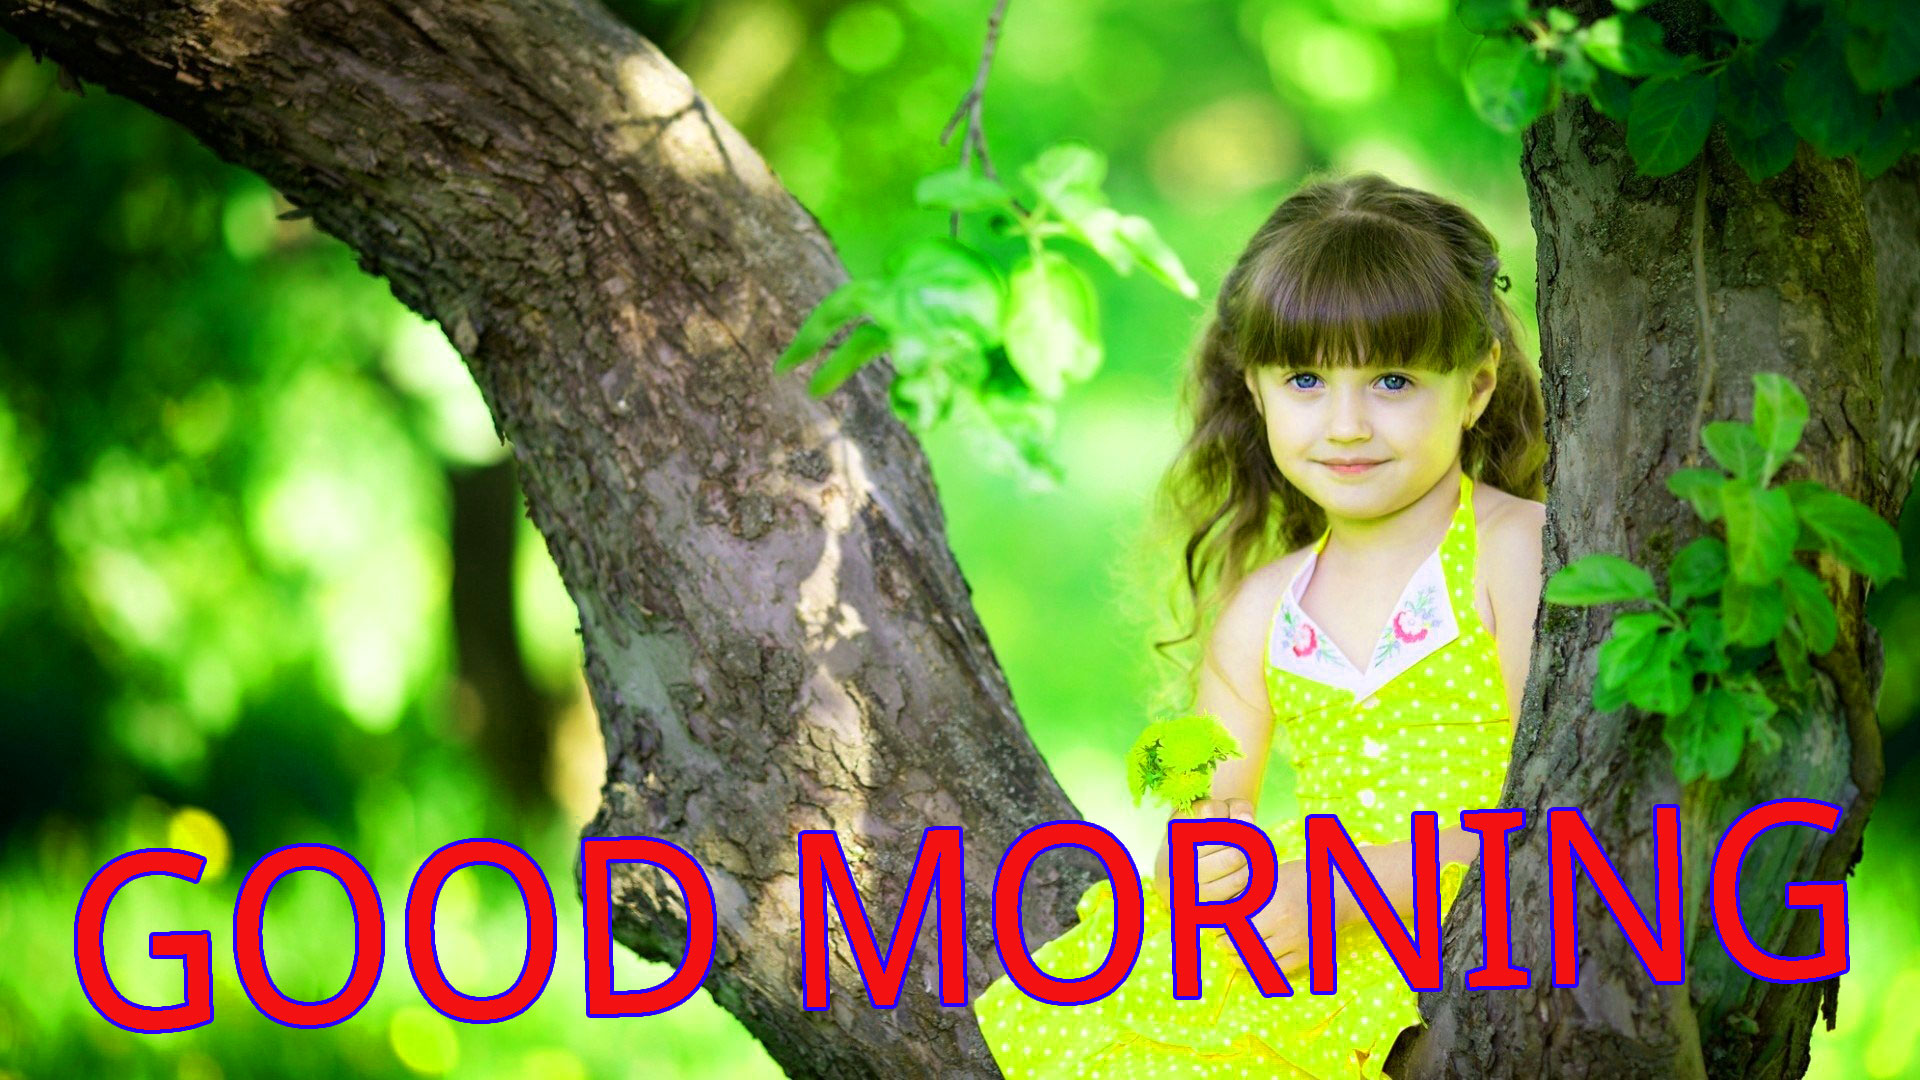 b59e2f6b853e Good Morning Indian Cute baby Girls Boys images Pics Download - 67+ ...